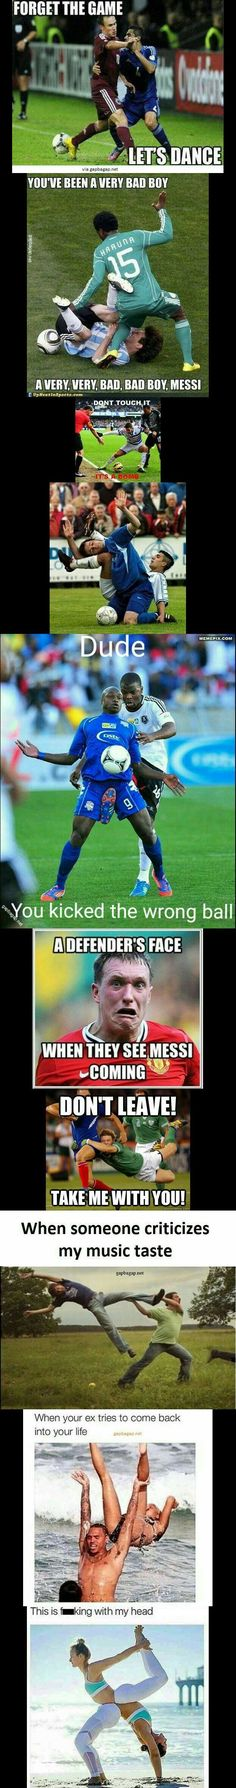 Top 10 Funniest Memes By Football Players